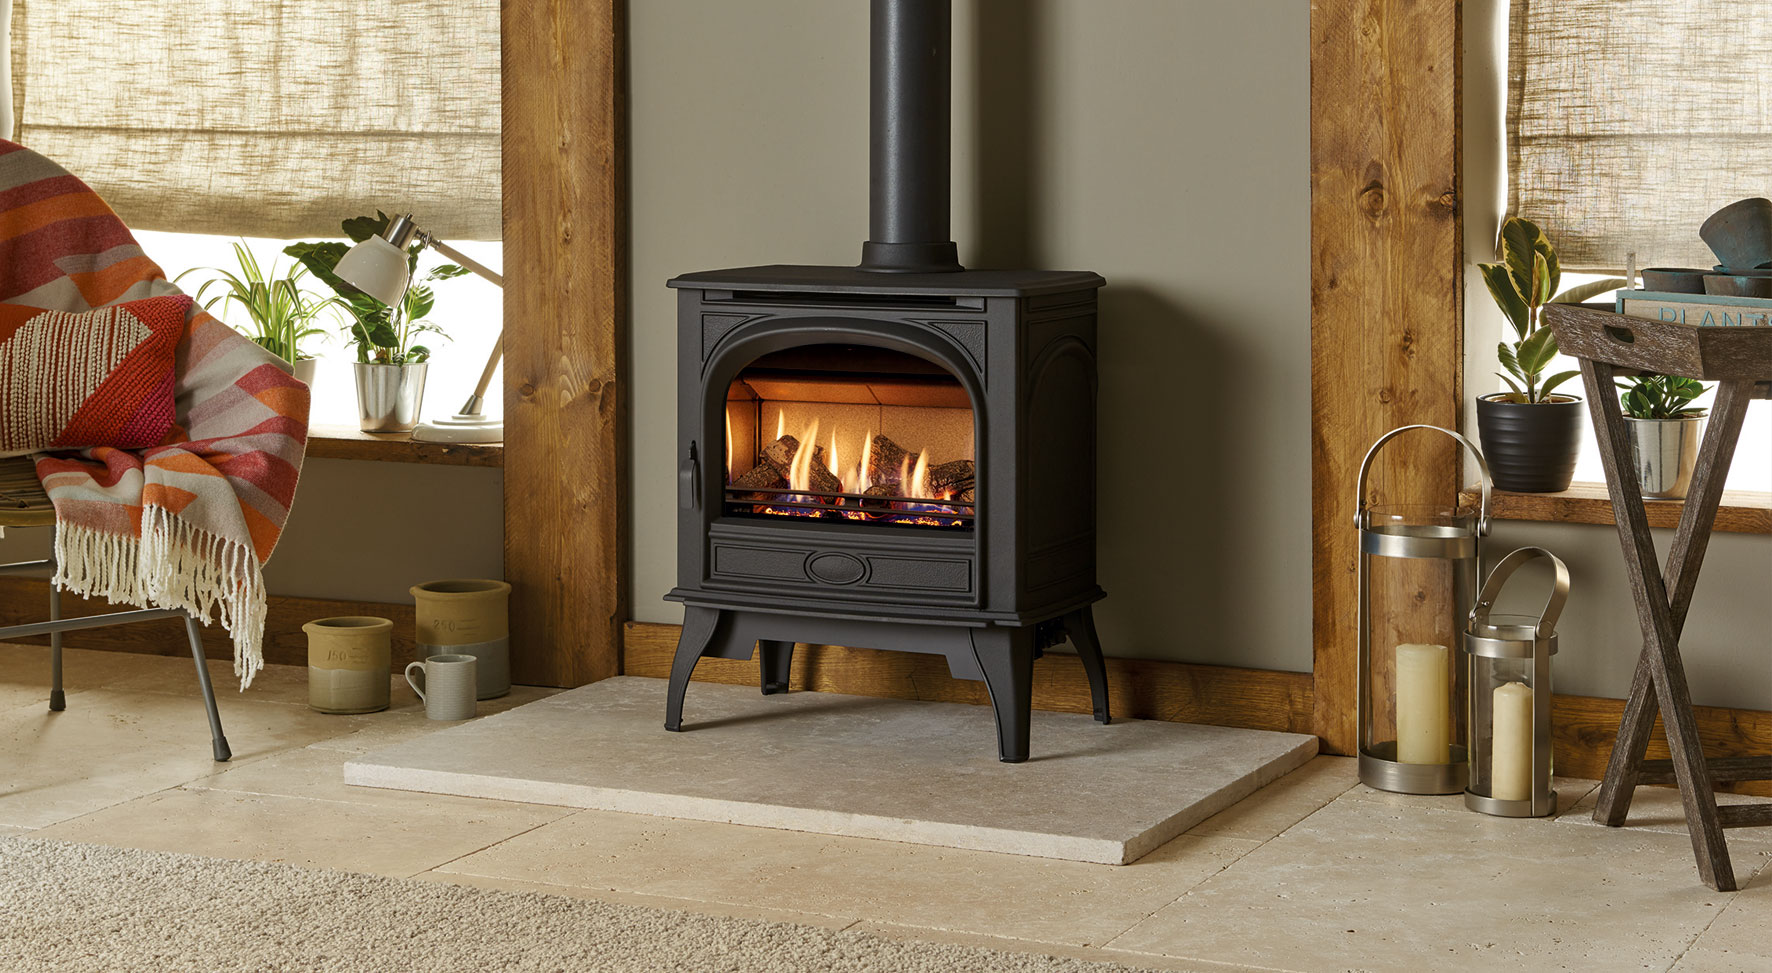 Why choose a Dovre Gas stove?